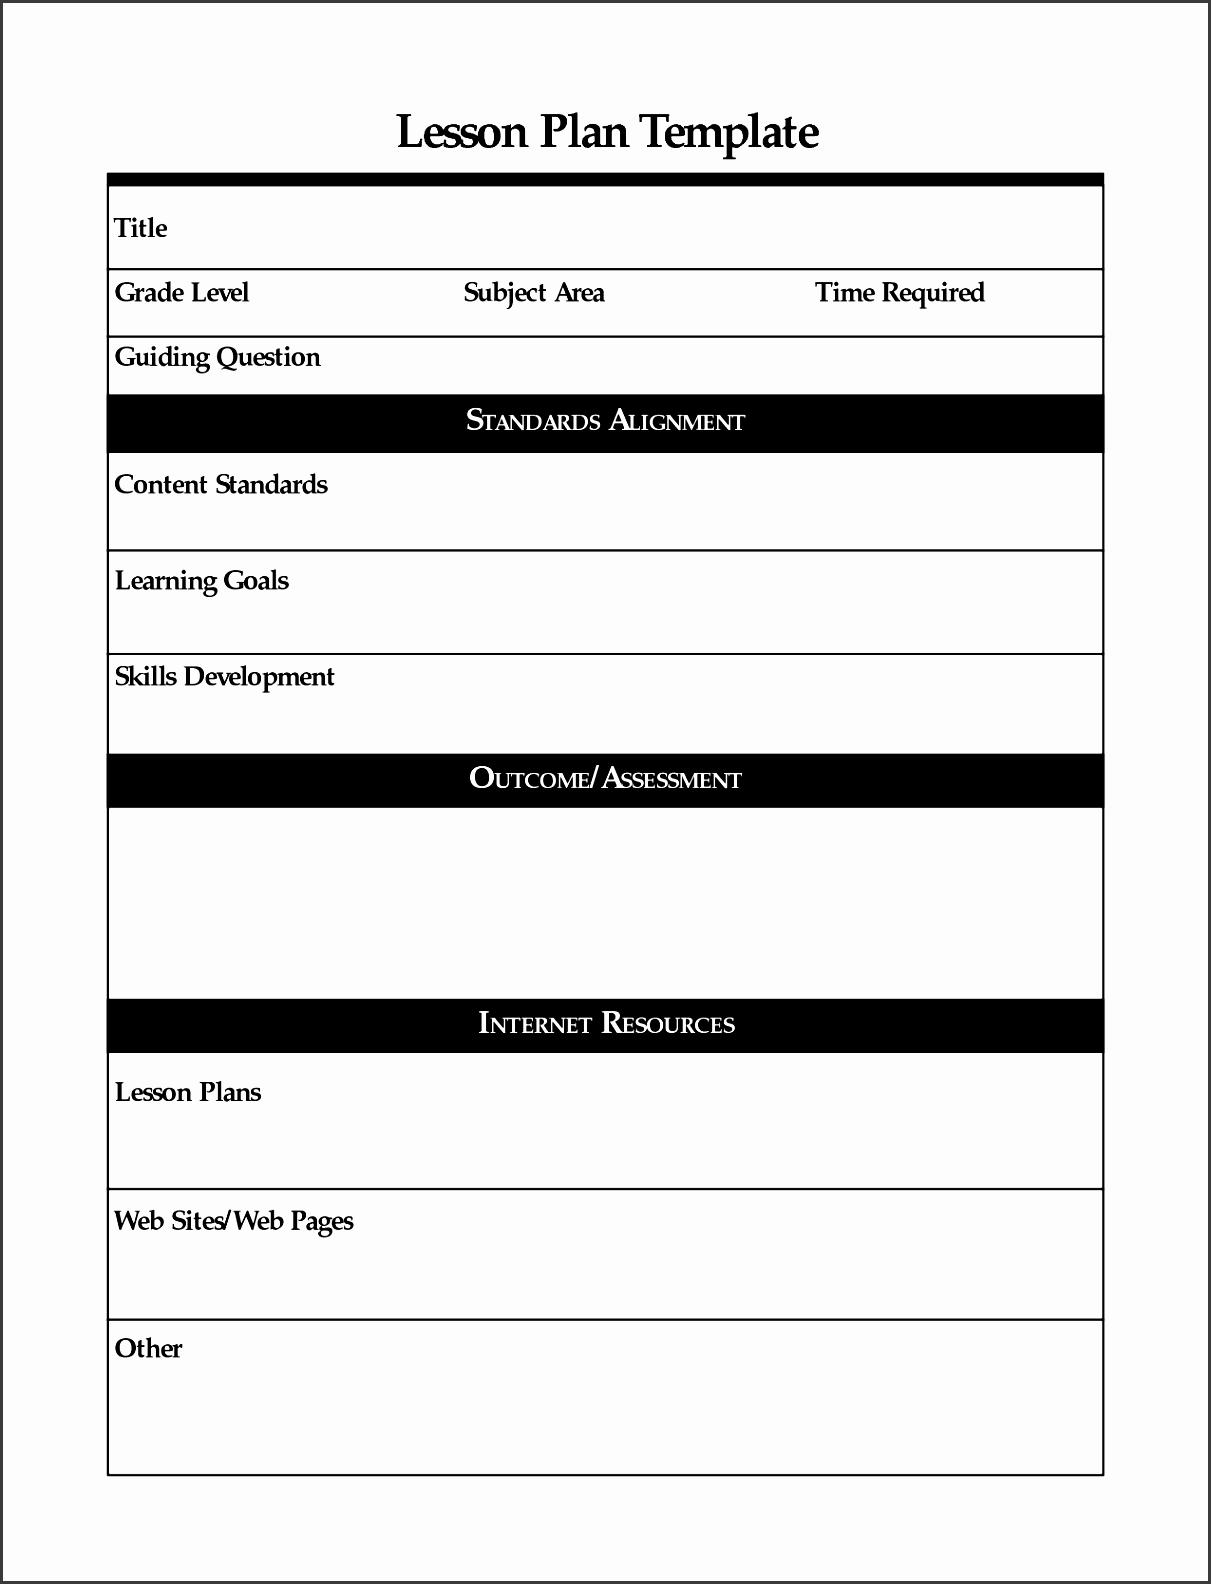 Lesson Plan Template Free Luxury 9 Free Lesson Planner Template Line Sampletemplatess